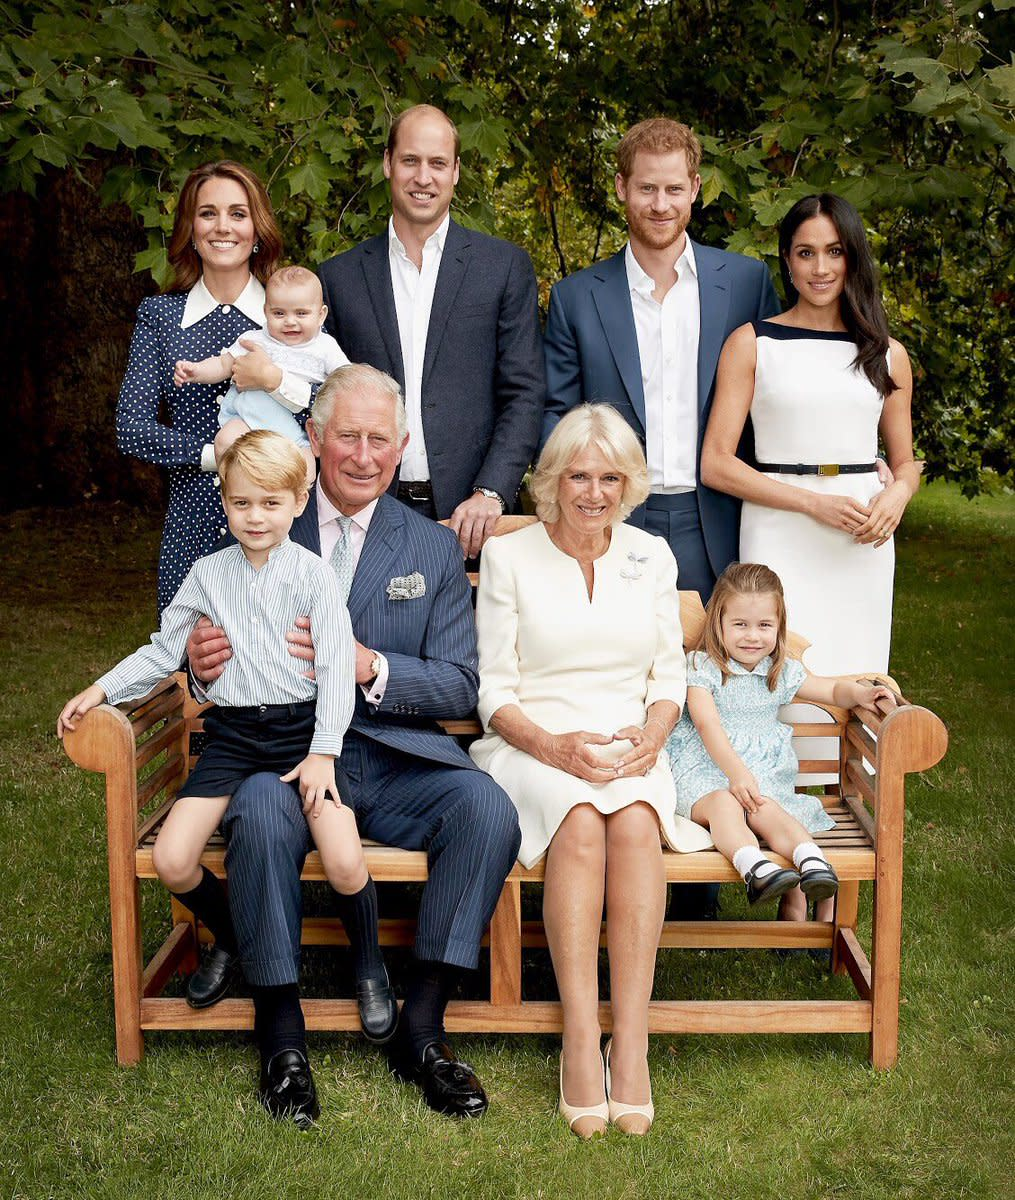 Prince Charles 70th birthday portrait is a sweet family photo